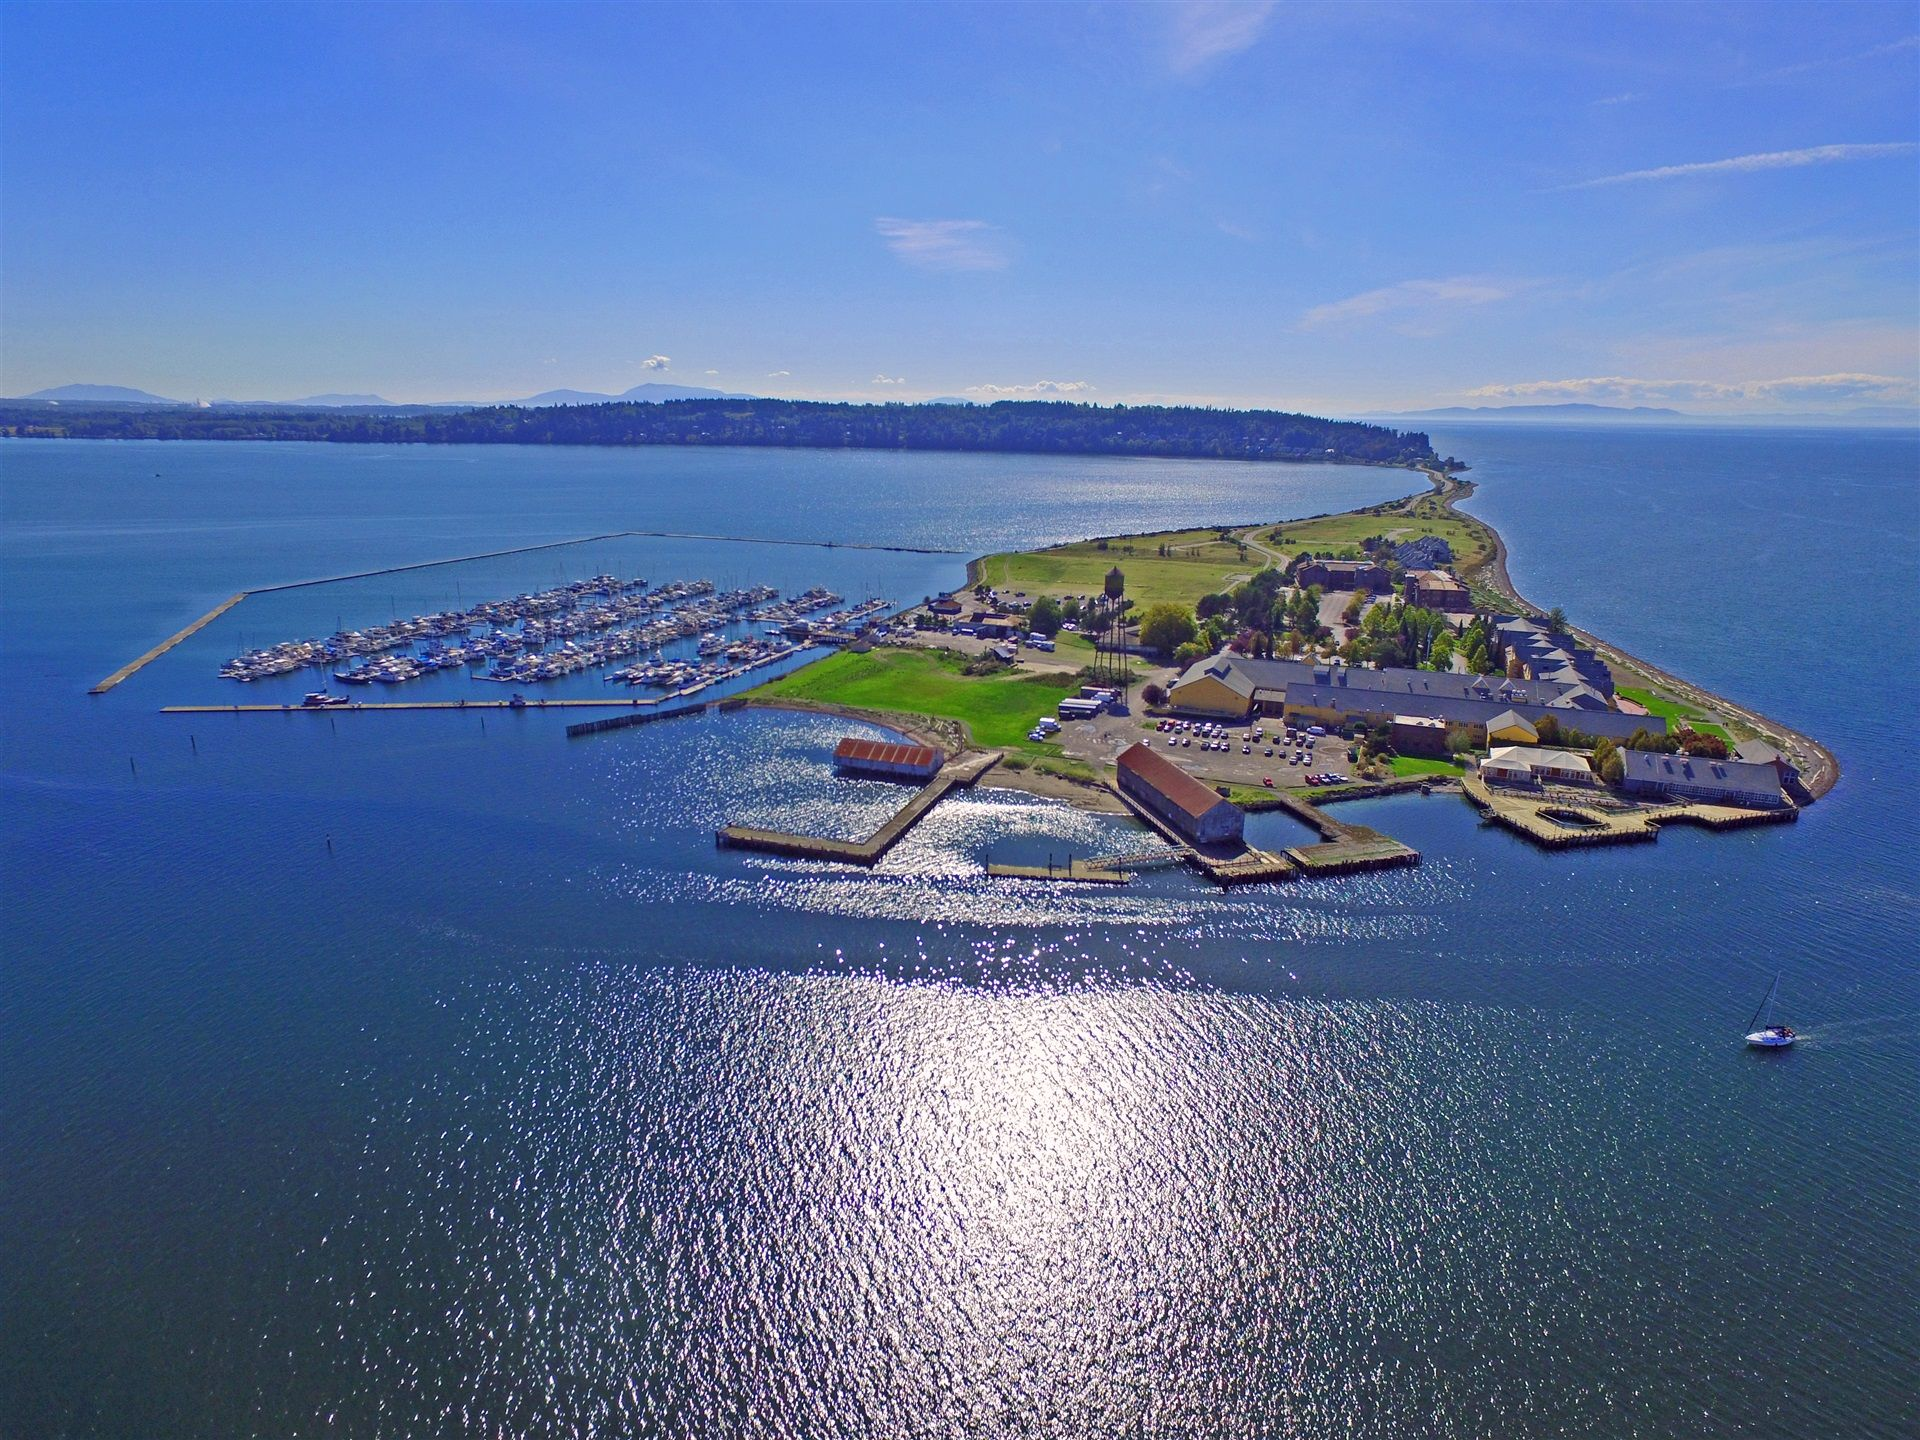 Nestled on a spit of land, Semiahmoo is surrounded by water, perfect for kayaking, paddle boarding and boating. Take to the water for whale watching, fishing or sailing.<p></p>